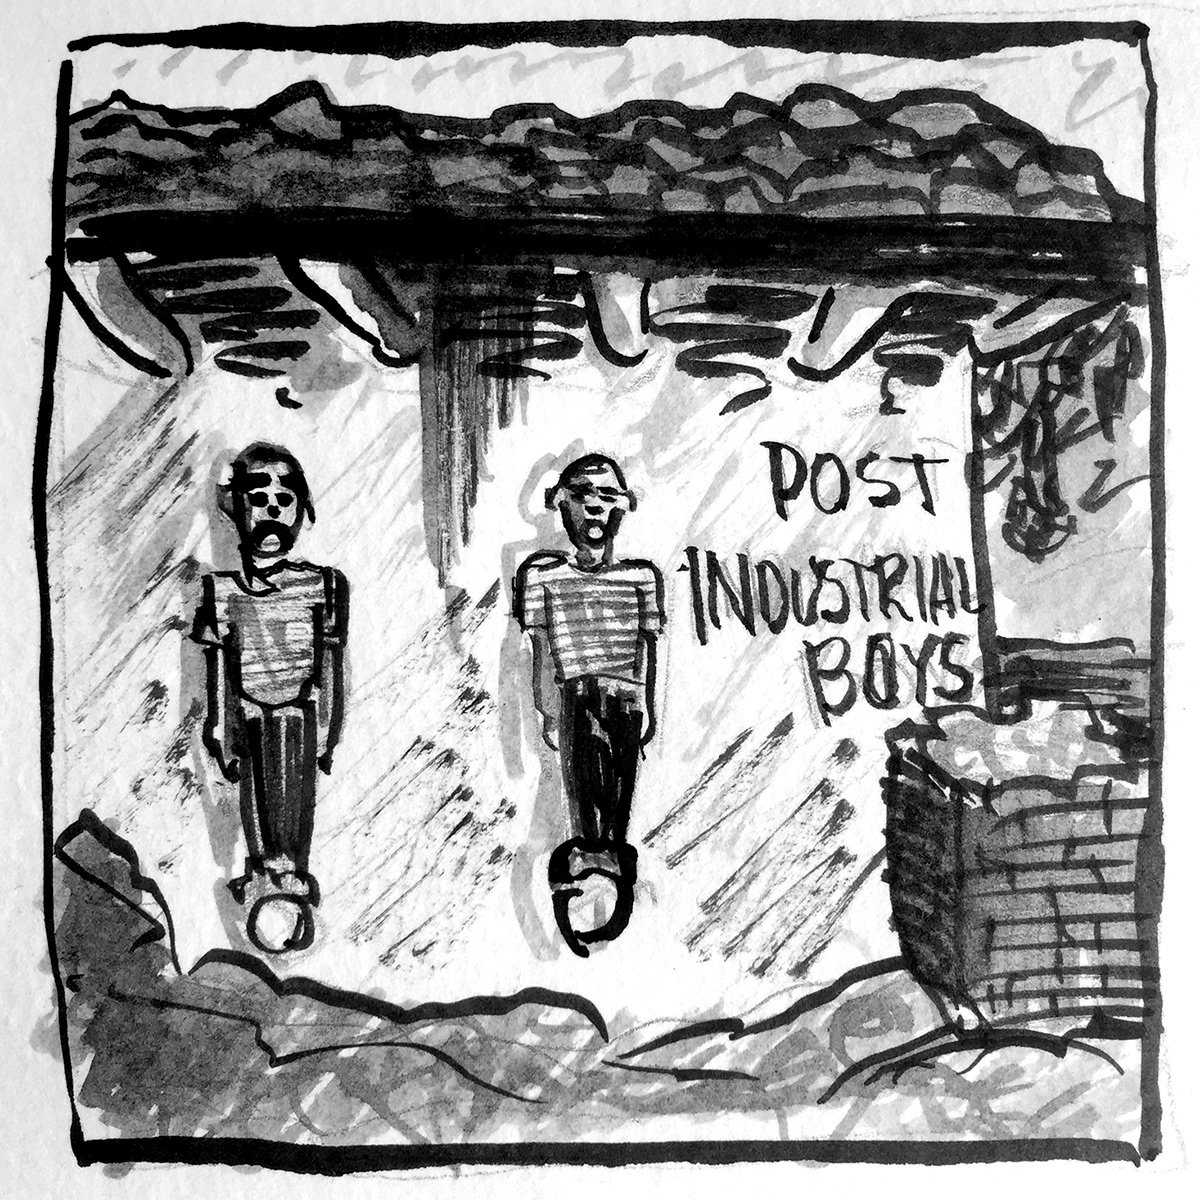 Post Industrial Boys Unintended